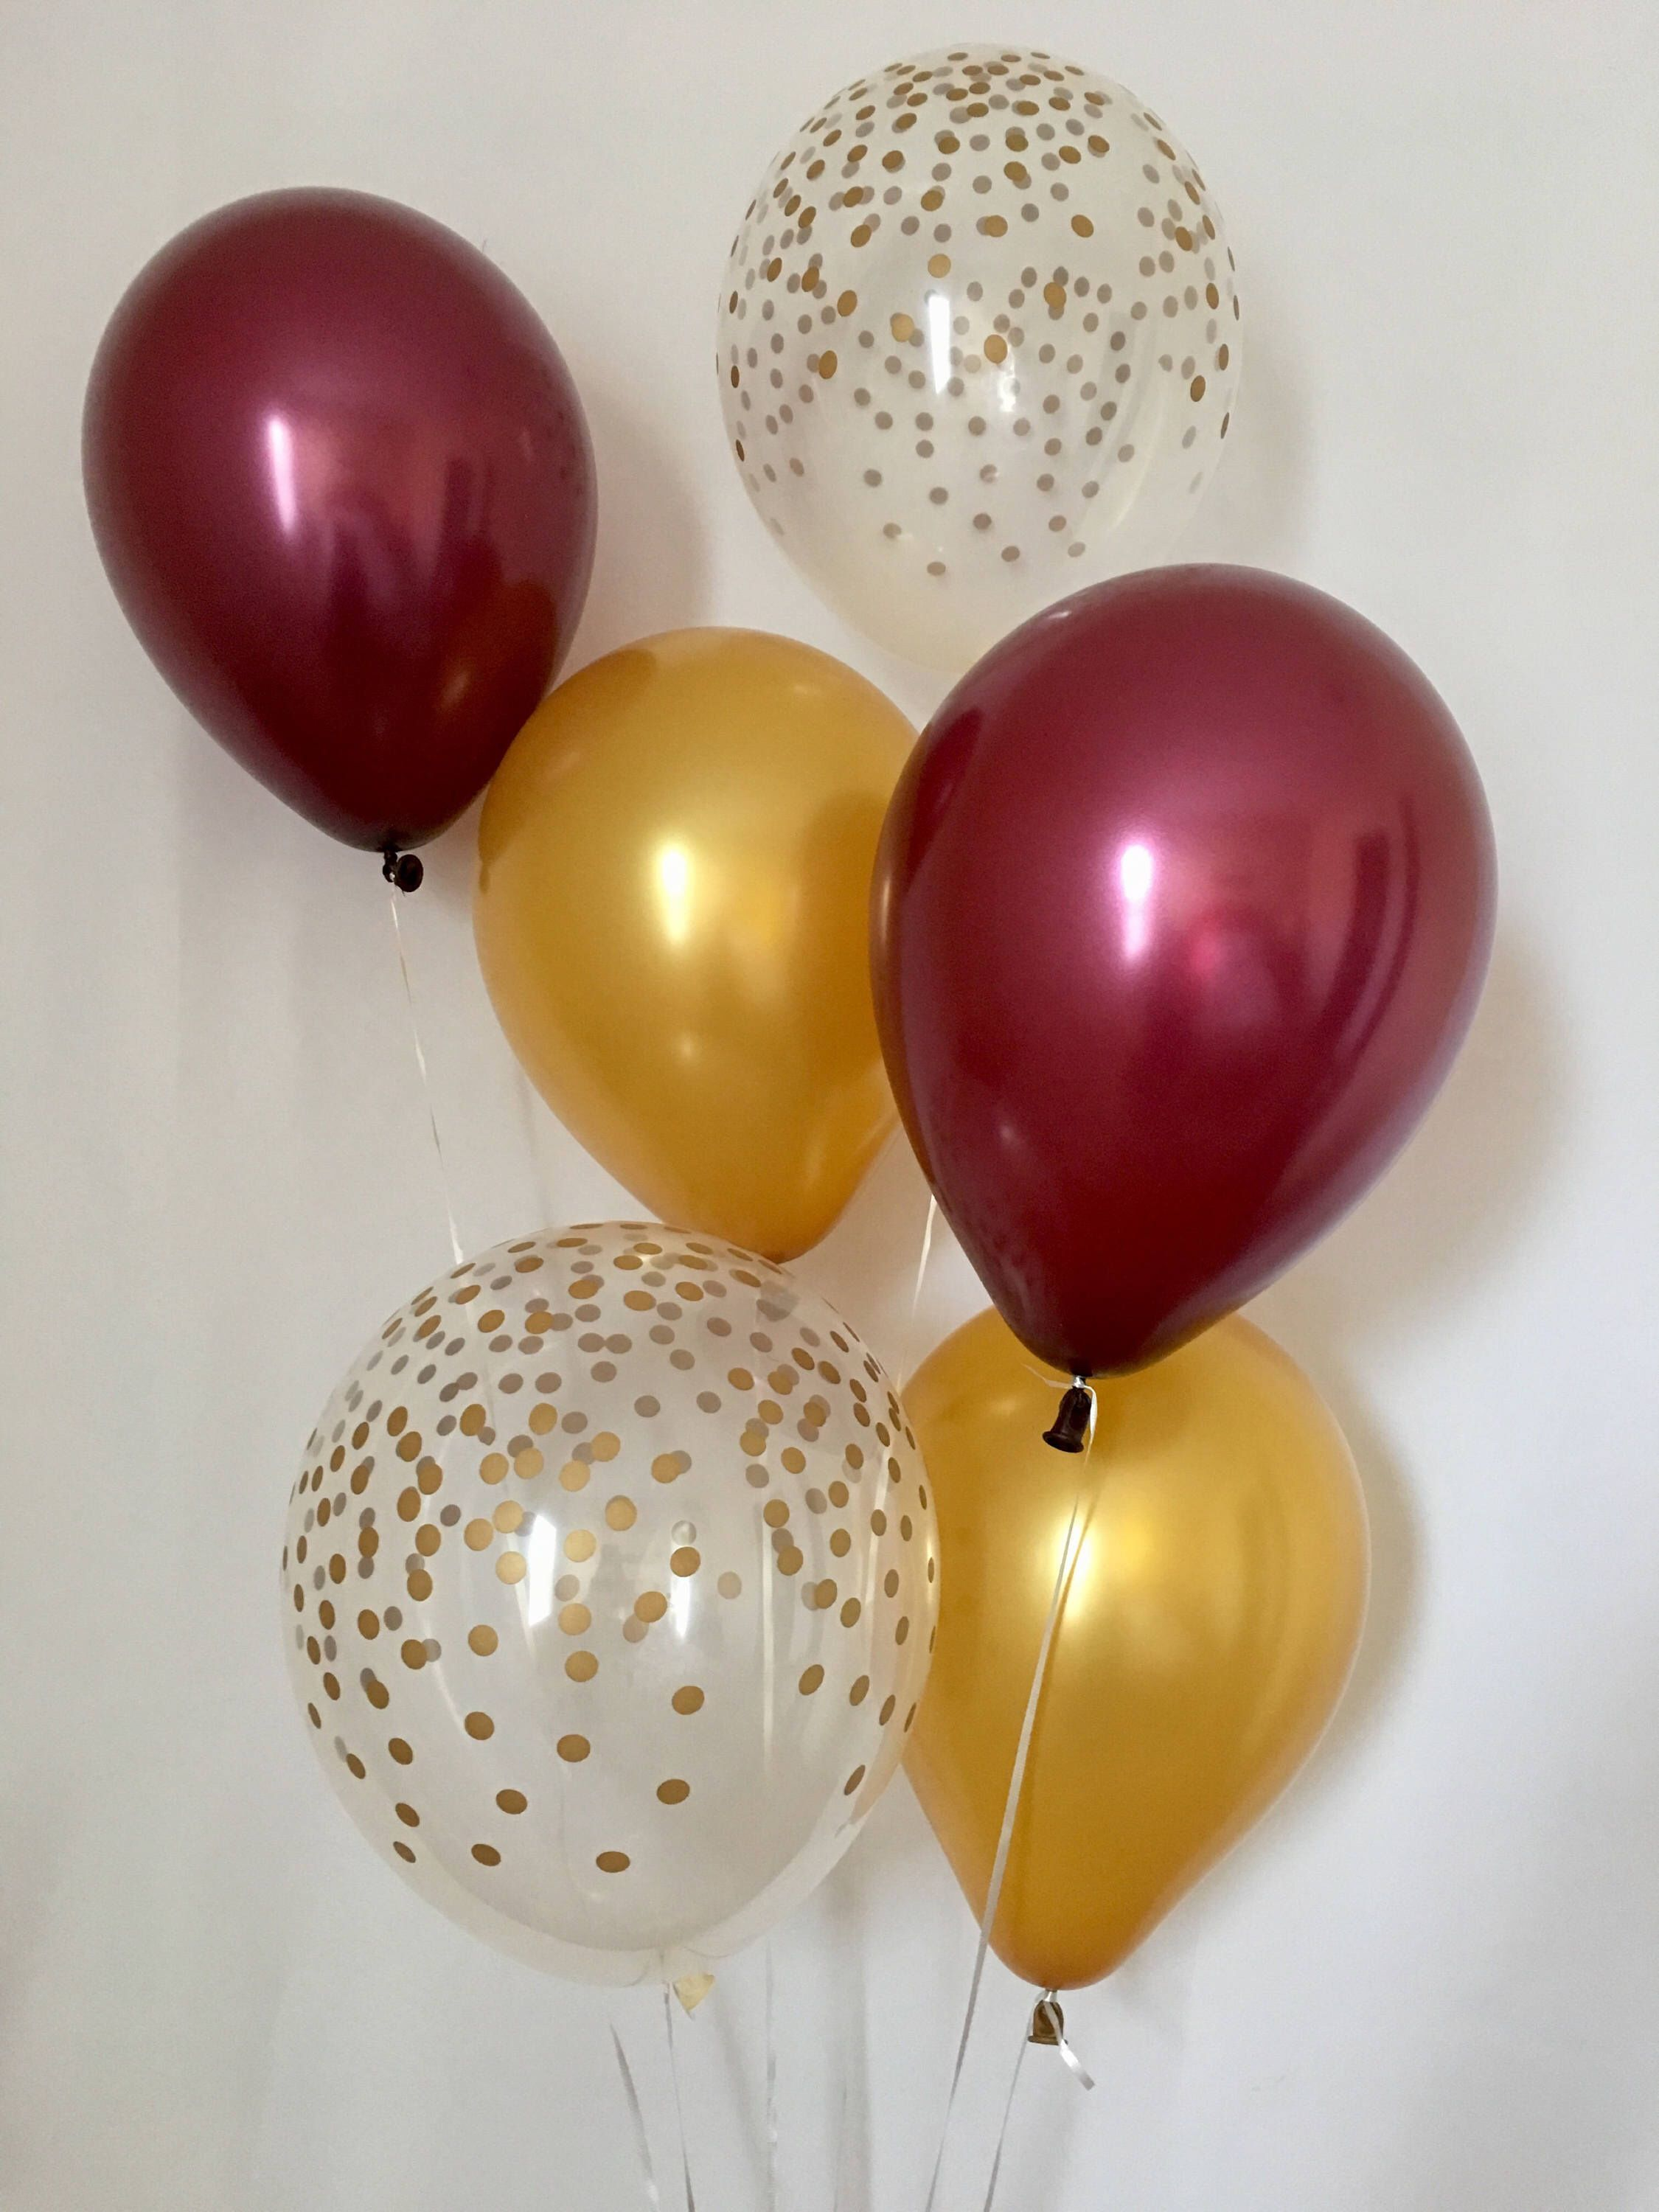 Magasin De Decoration Fete Bordeaux Ballons En Latex Bordeaux Or Et Confettis Or Clair Tomber